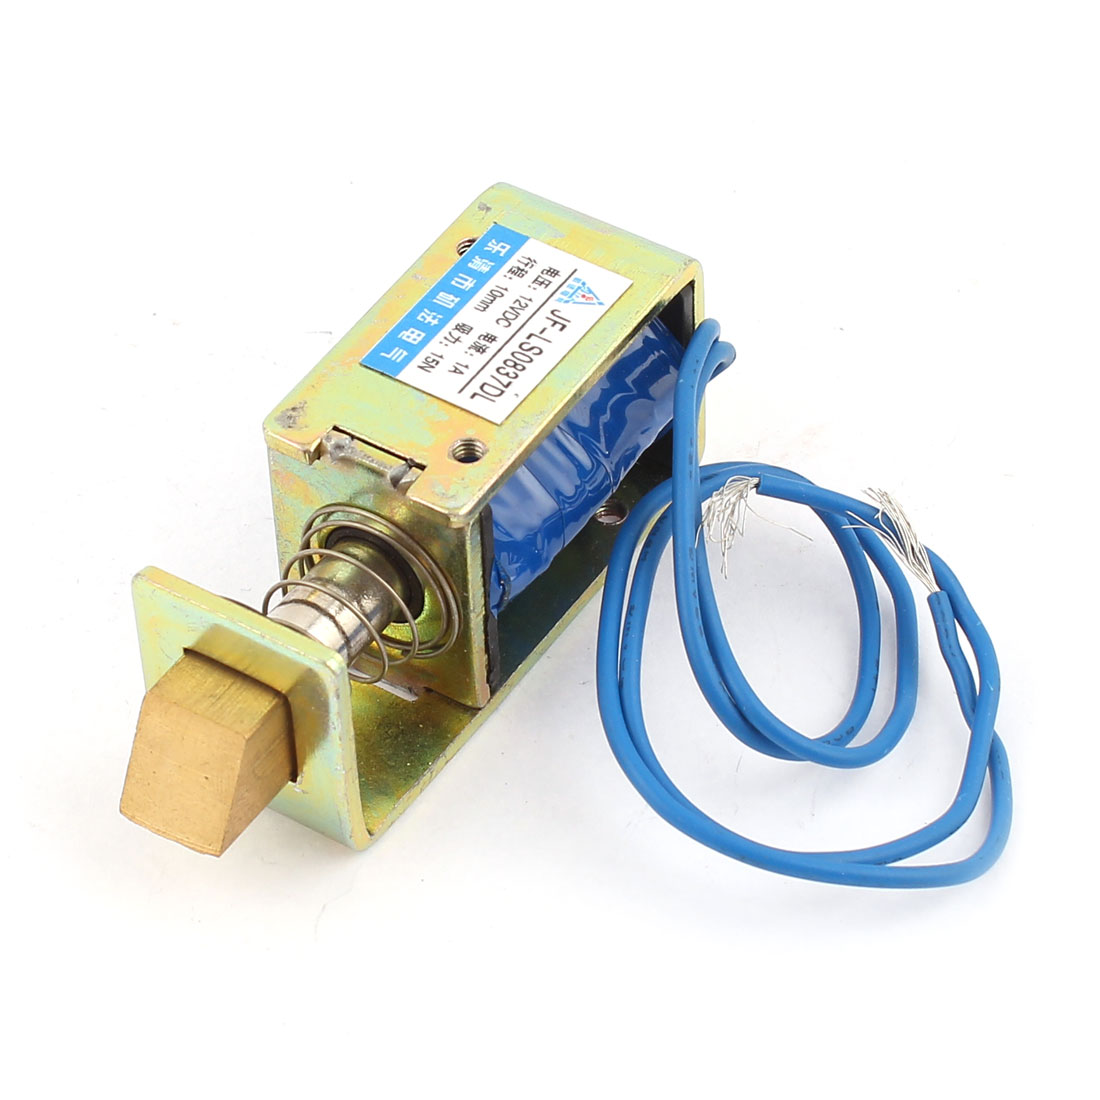 Uxcell JF-0837DL DC 12V 1A 10mm 15N Pull Type Open Frame Electromagnet Solenoid For Door Lock